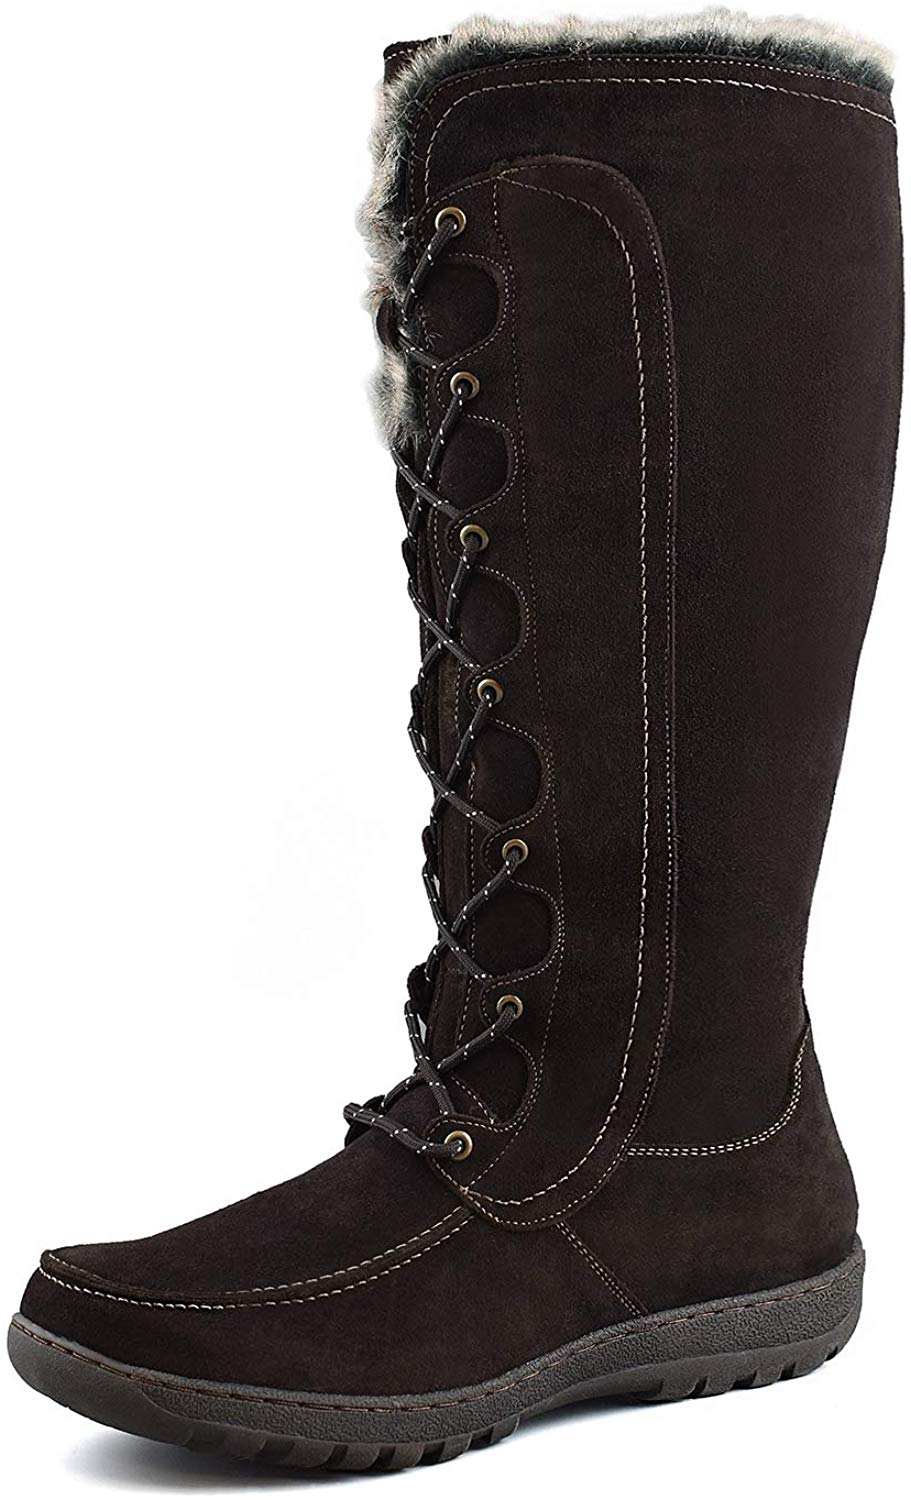 Moda Women's Warm Insulated Winter Boots Warsaw